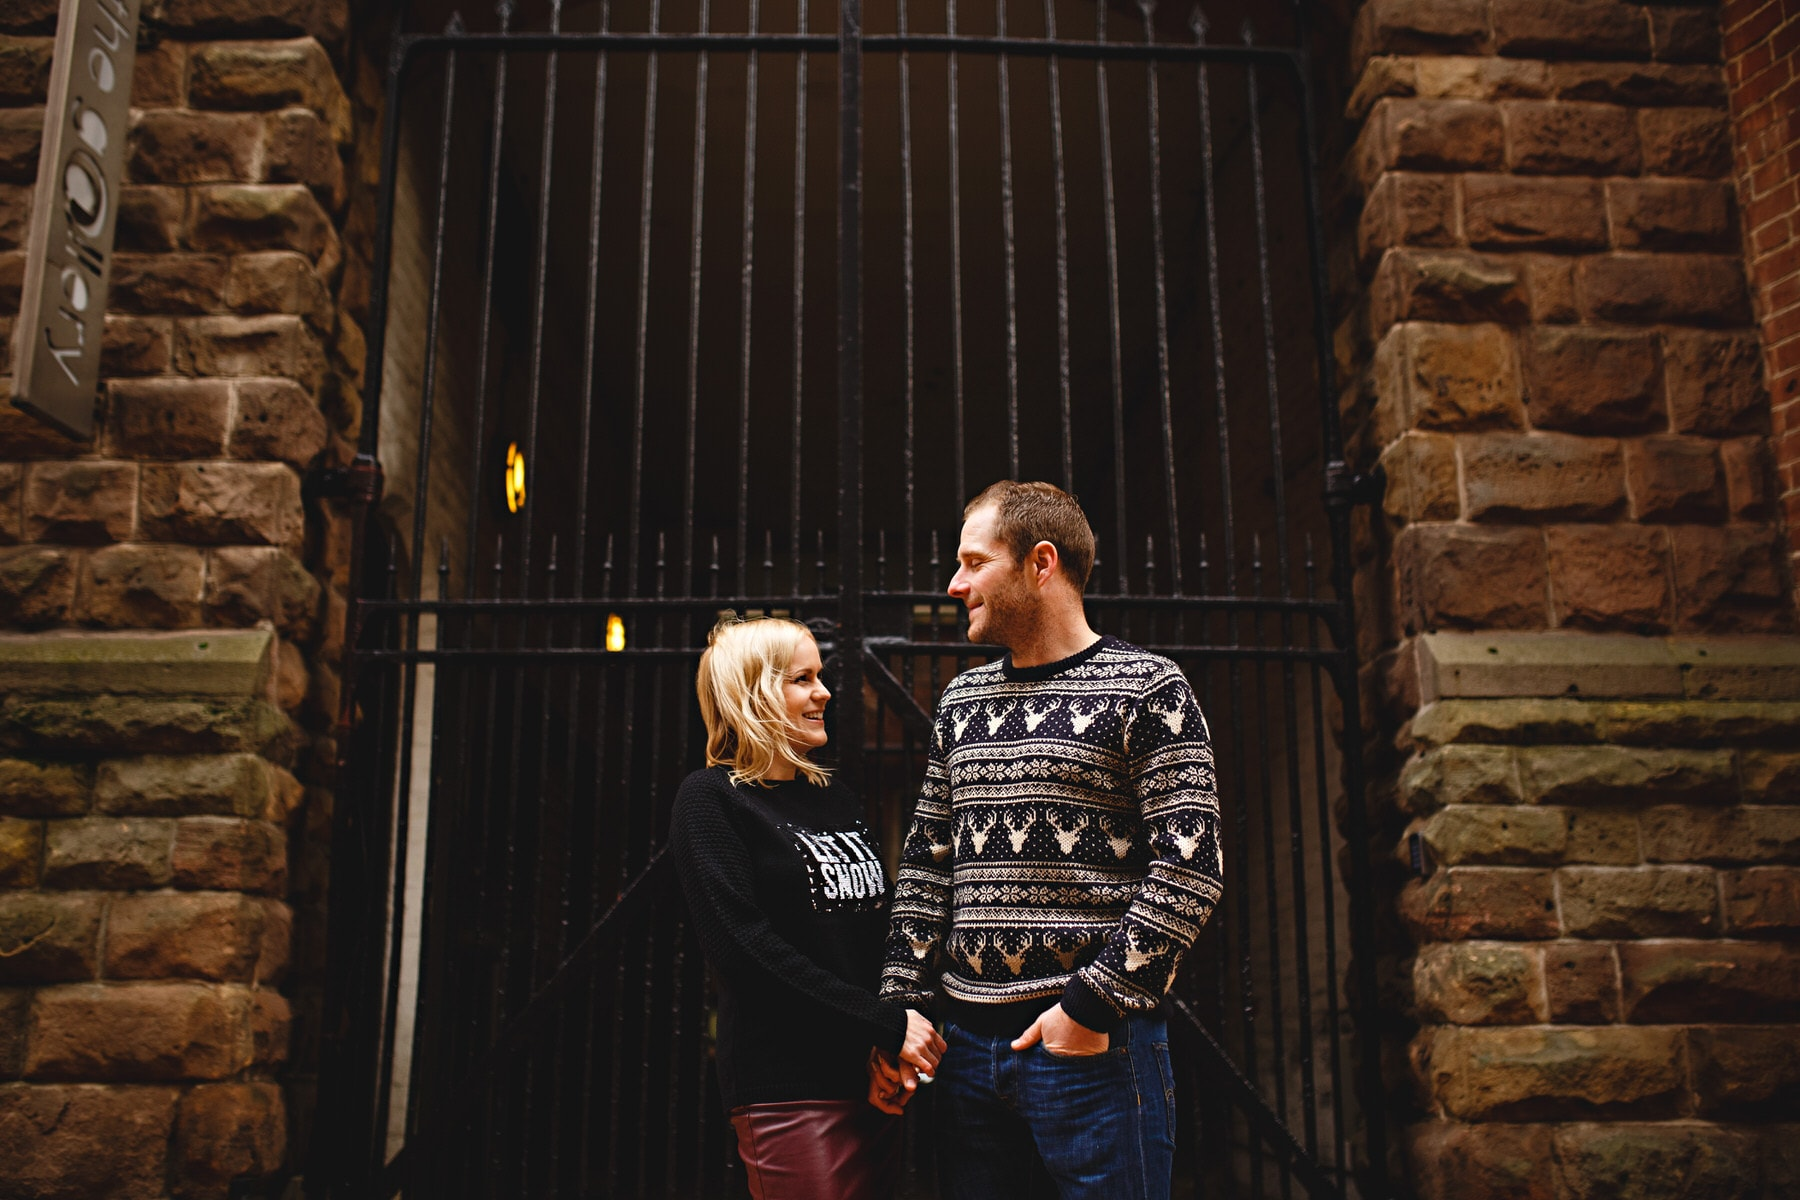 matching stipy jumpers on their engagement photoshoot in the city